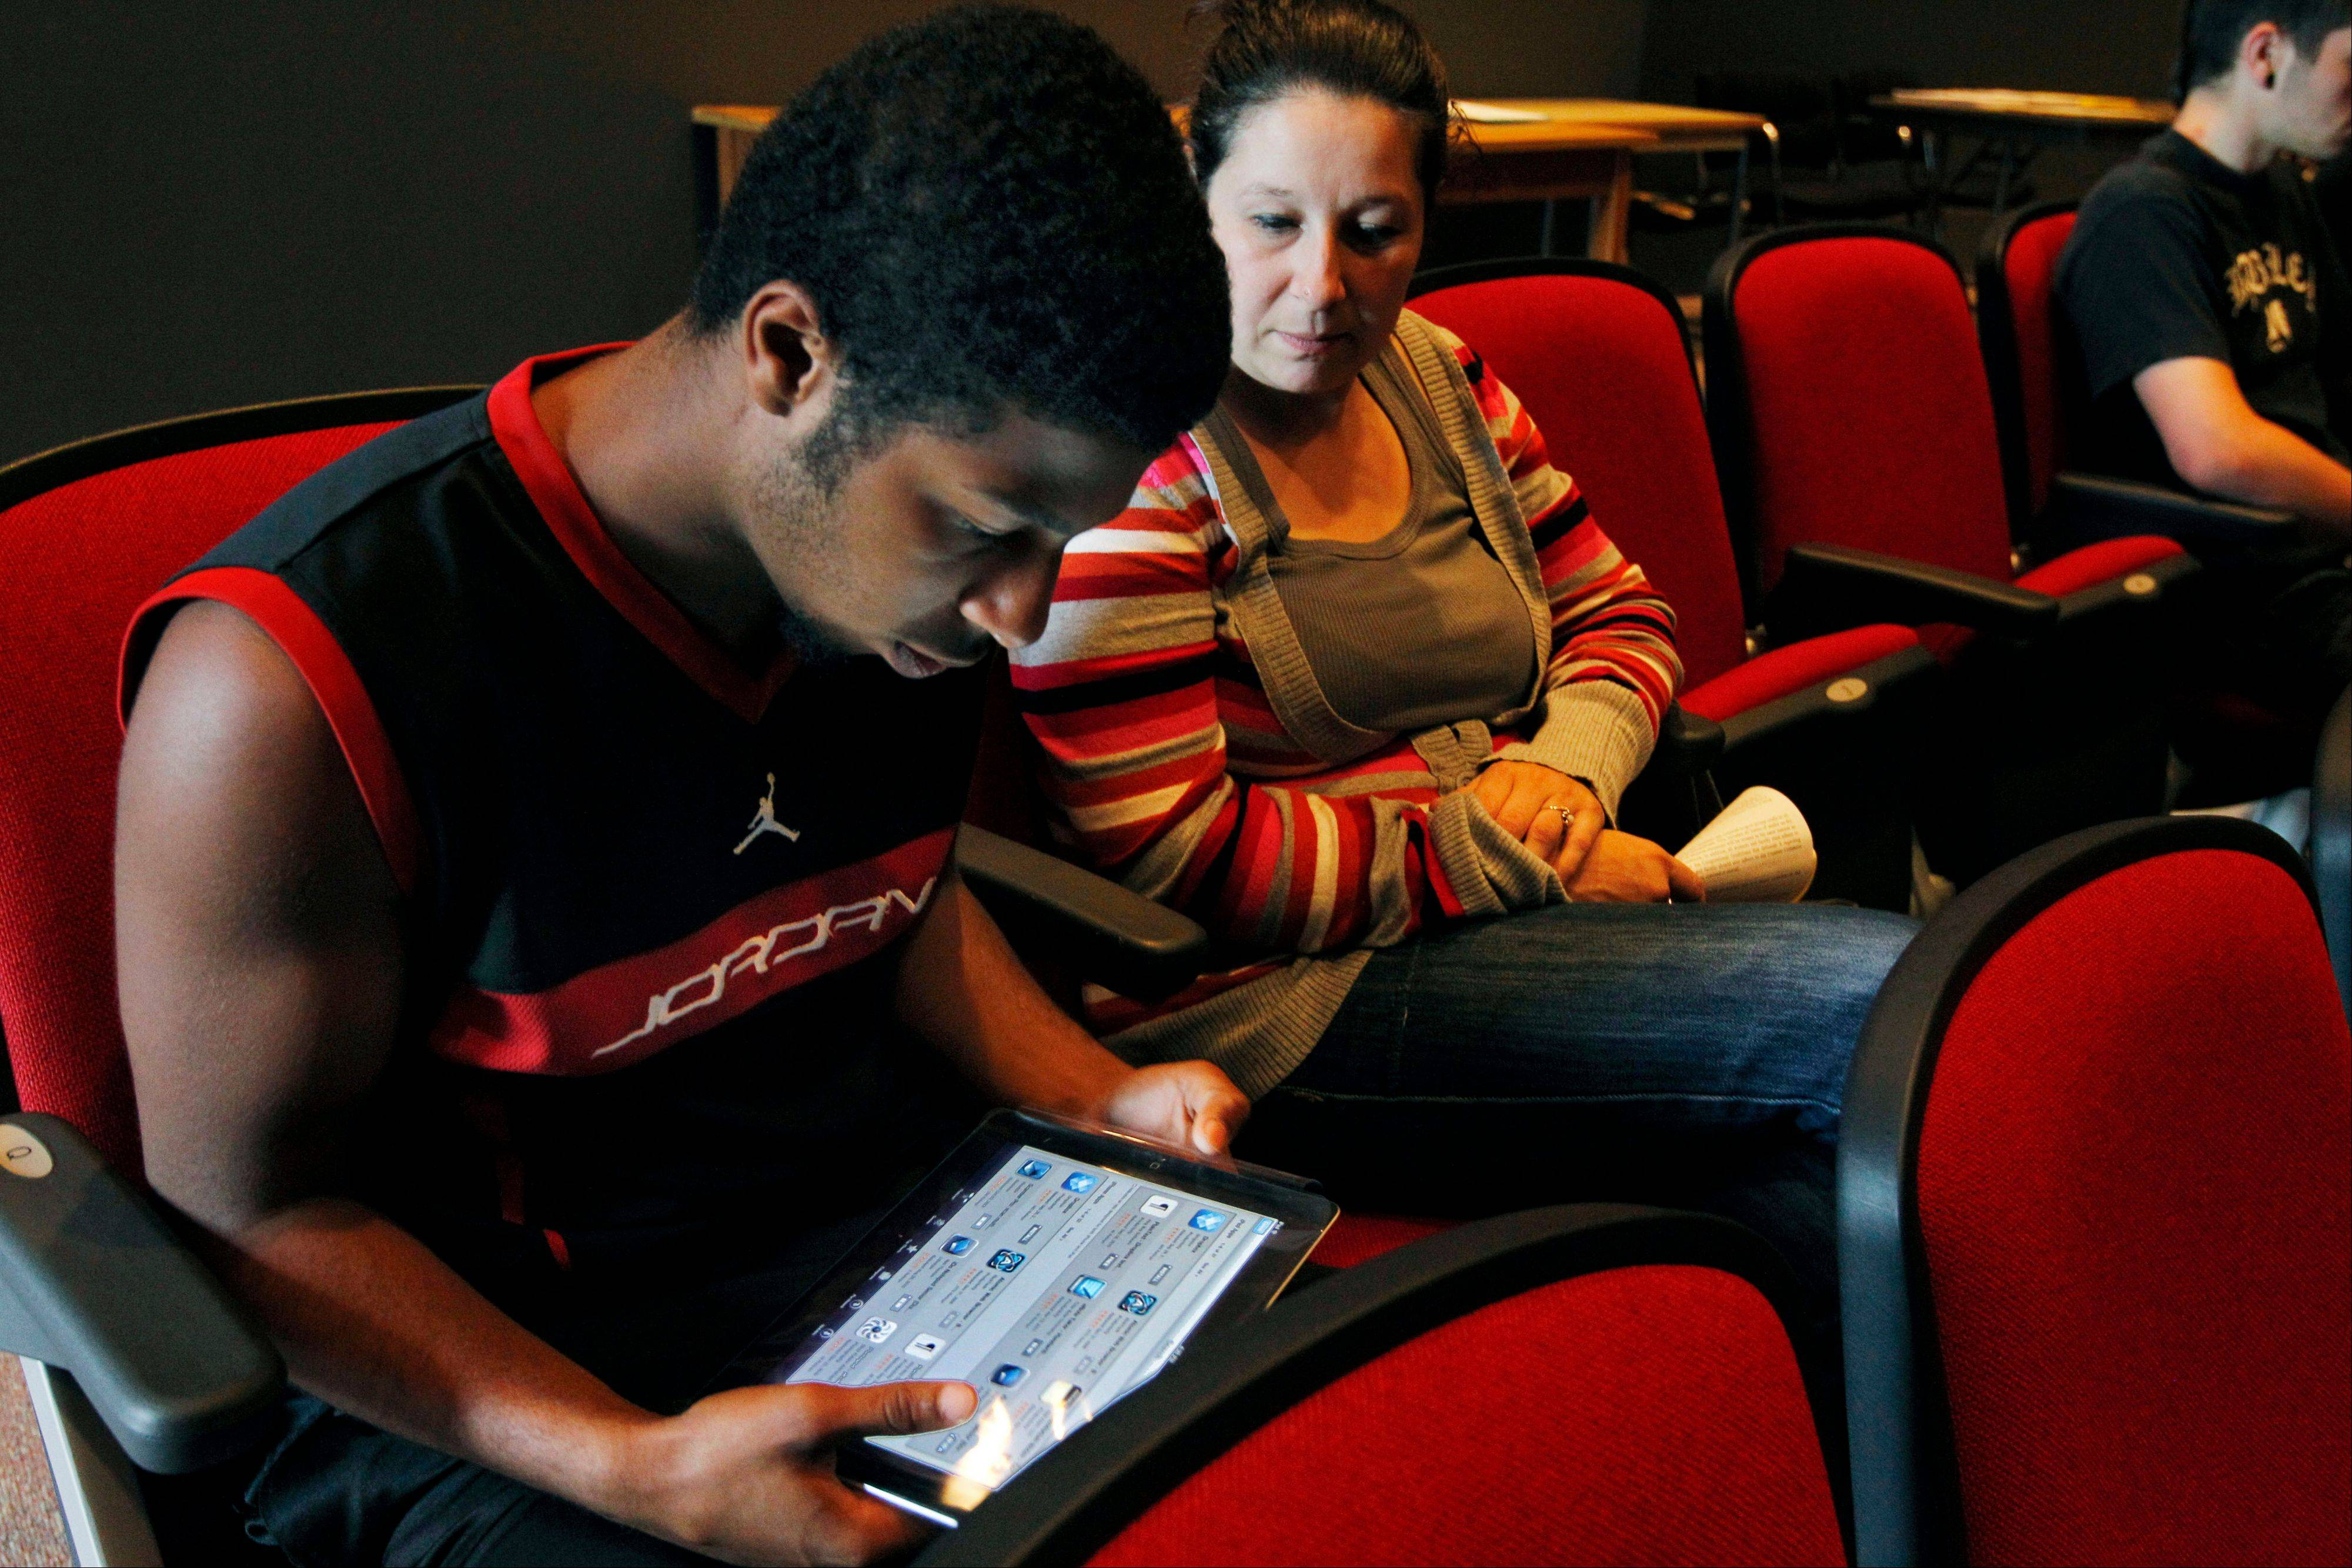 Sophomore Lenny Thelusma, 16, checks out his new iPad as his mother, Tara Killion, looks on at Burlington High School in Burlington, Mass. Burlington is giving iPads this year to every one of its 1,000-plus high school students. Some classes will still have textbooks, but the majority of work and lessons will be on the iPads.